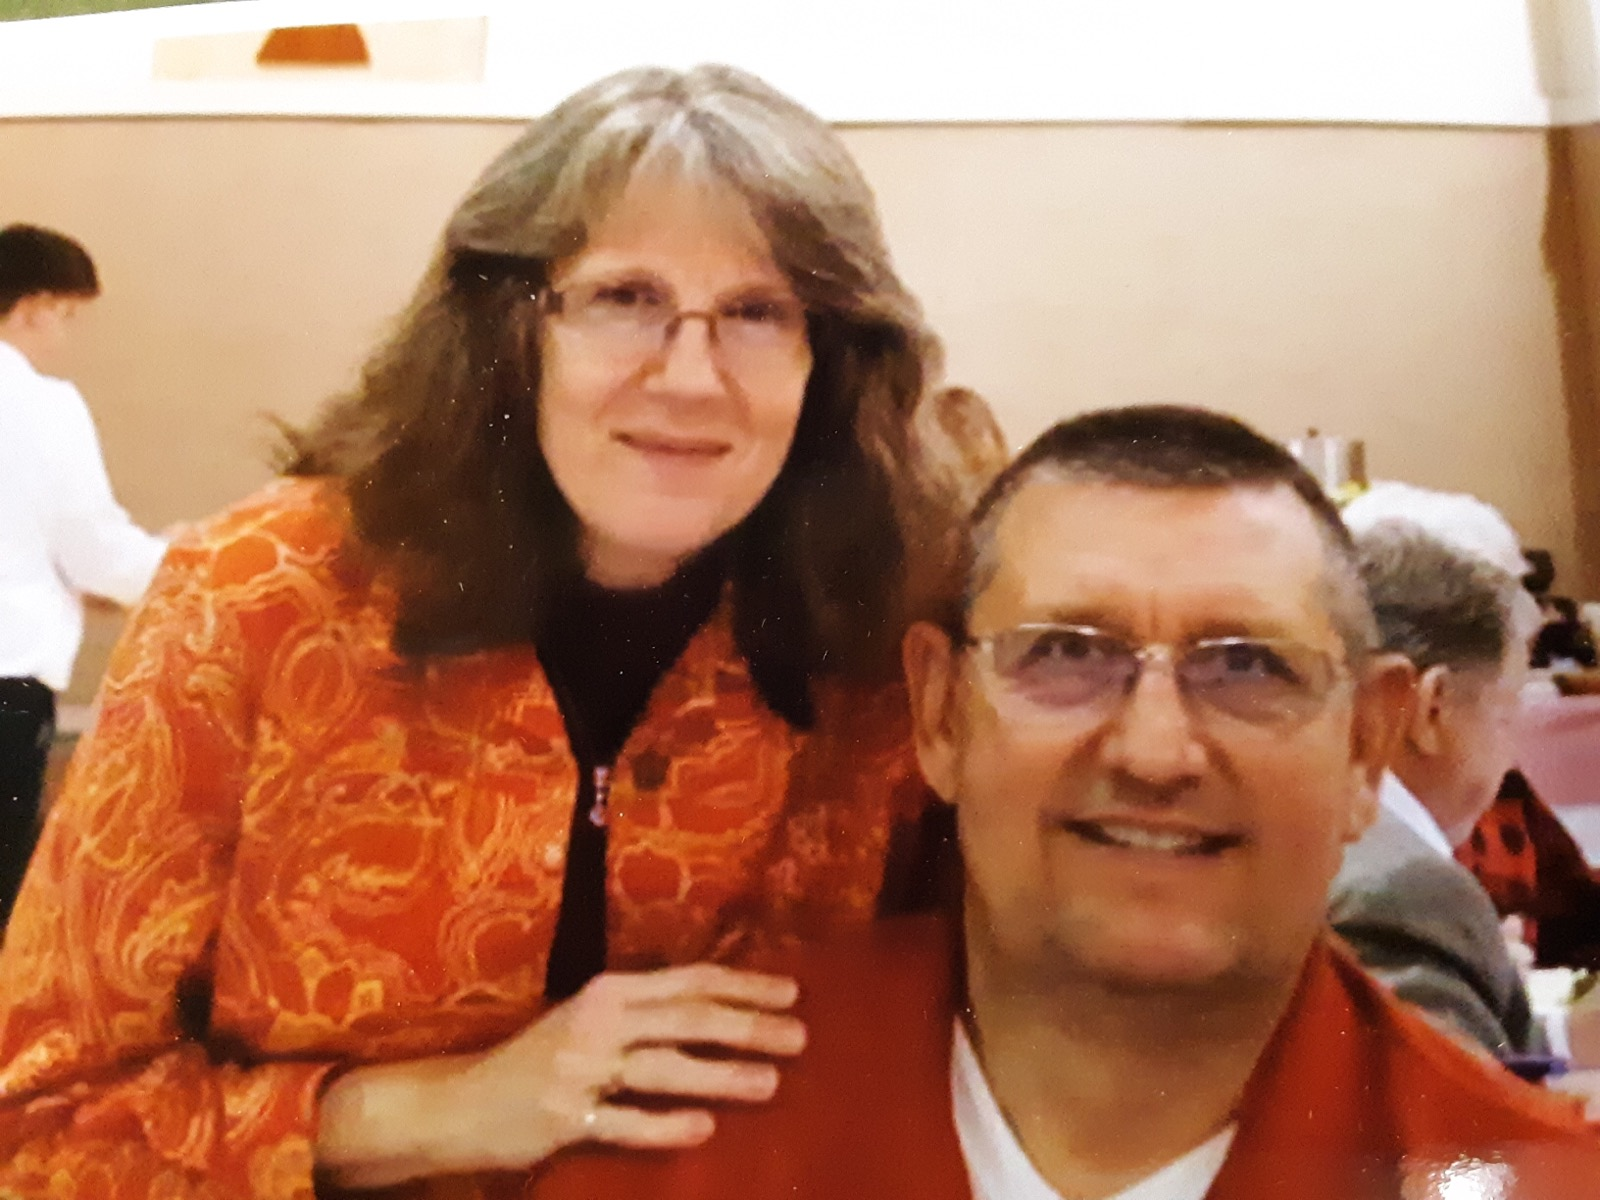 secretary - Joy CagleJoy became church secretary in 2002, prior to that time she served as the church custodian and bookkeeper. Joy also spent many years teaching Sunday School, Children's Church, played with babies in the nursery, and served on a variety of ministries.Joy is pictured here with her husband Don. They were married in 1980, moved to Sherwood and started attending FCC in 1986. Joy and Don have three sons, Justin, Derrick and Nicholas, all three boys were raised attending FCC Sherwood and were active in worship, Sunday school, acolytes, youth, missions and other great activities the church had to offer.